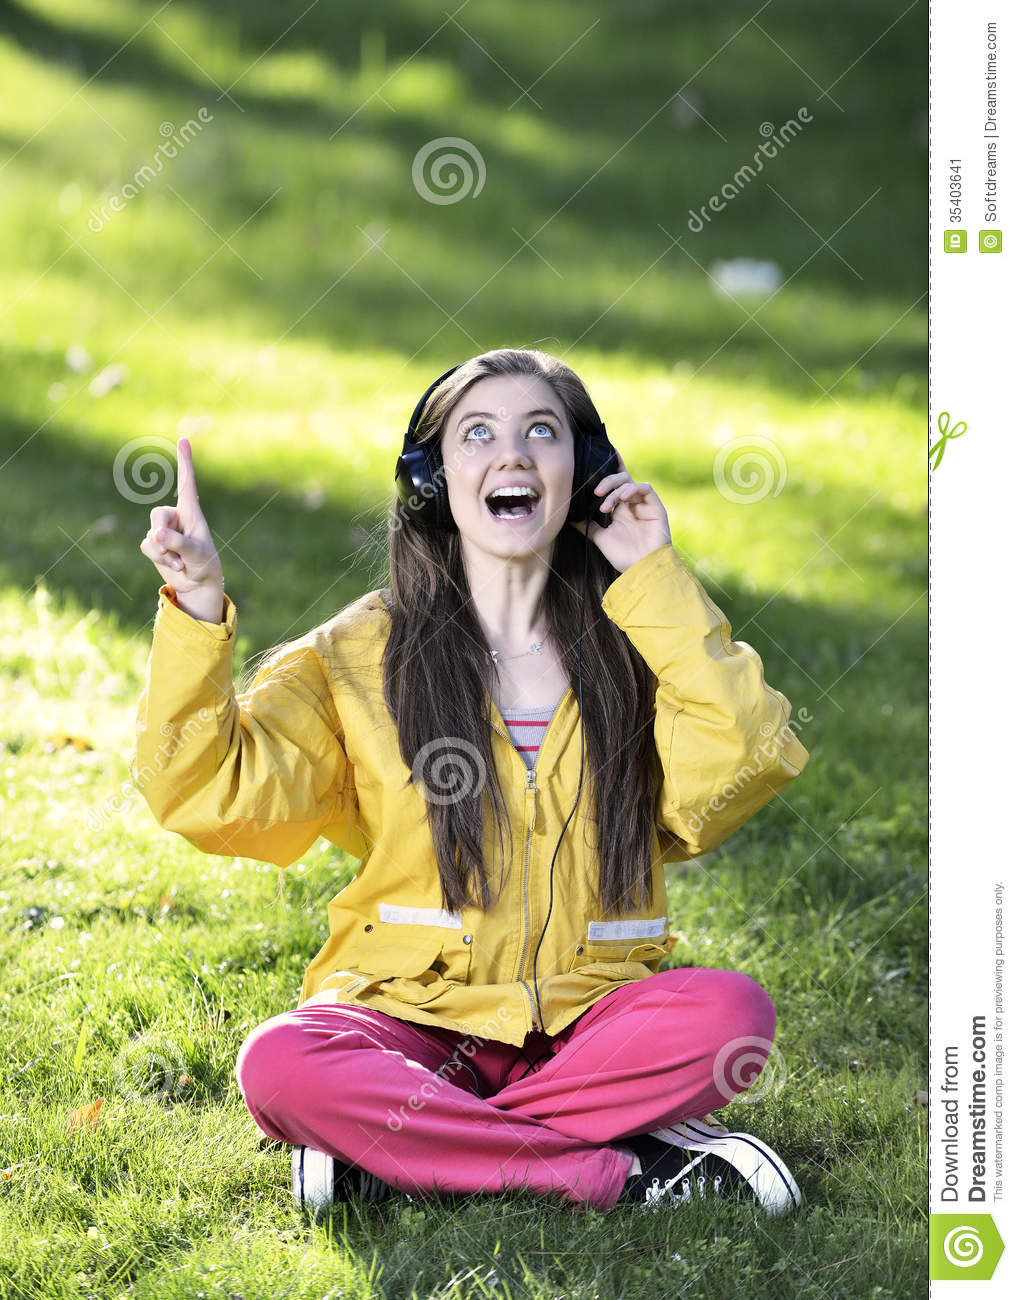 Listening to music while studying woman listening to music